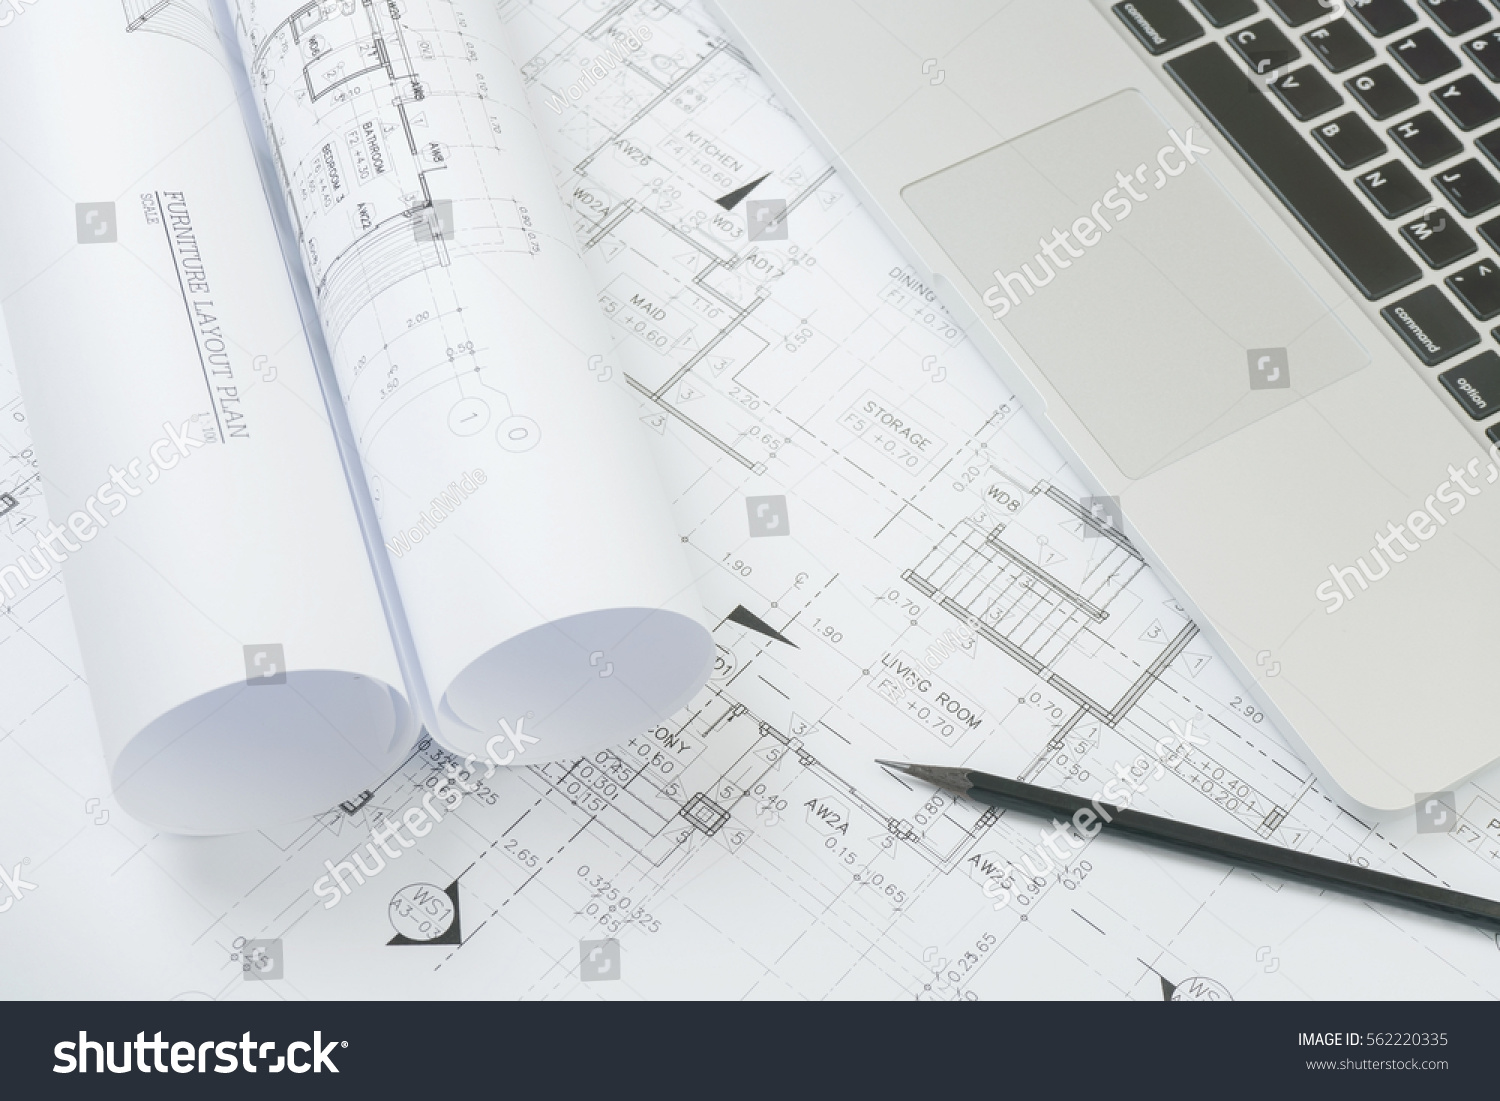 Black Pencil Computer Laptop On Architectural Stock Photo